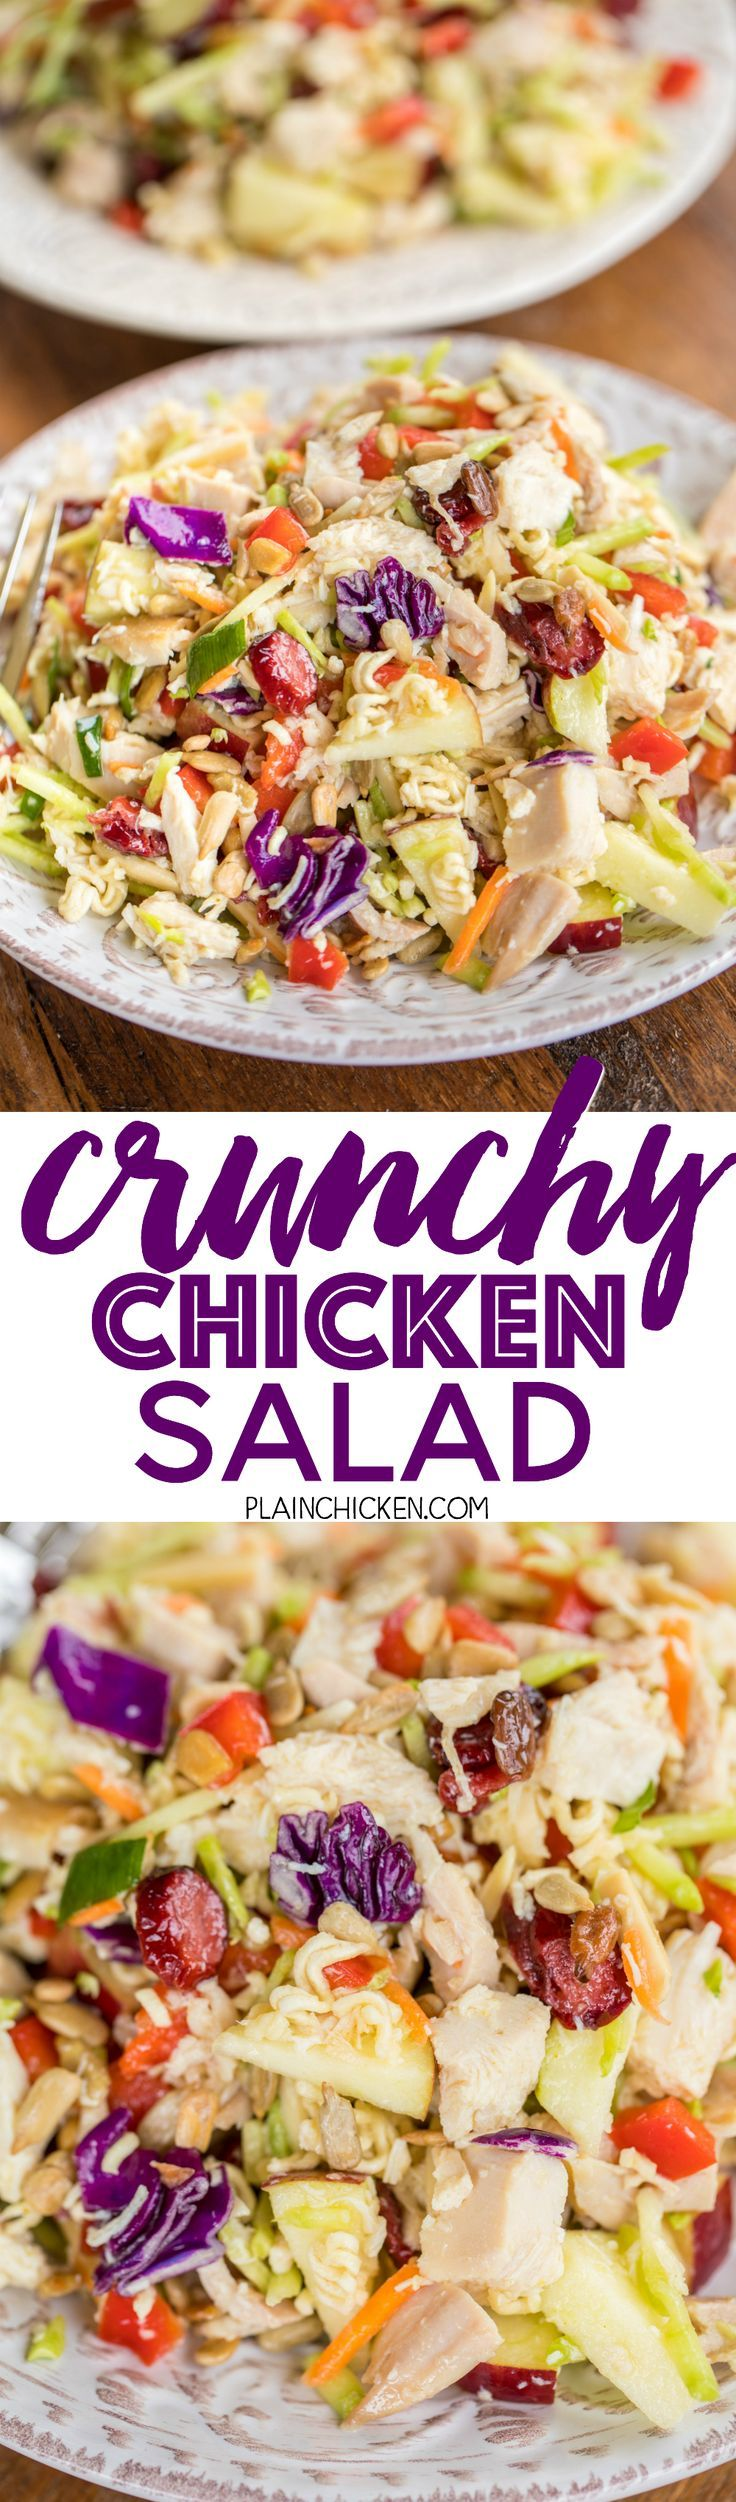 Crunchy Chicken Salad - seriously the best chicken salad EVER! SO different, but crazy good! Chicken, broccoli slaw, red apple, sunflower kernels, dried cranberries, green onions, red bell pepper, slivered almonds, ramen noodles, tossed in vegetable oil,